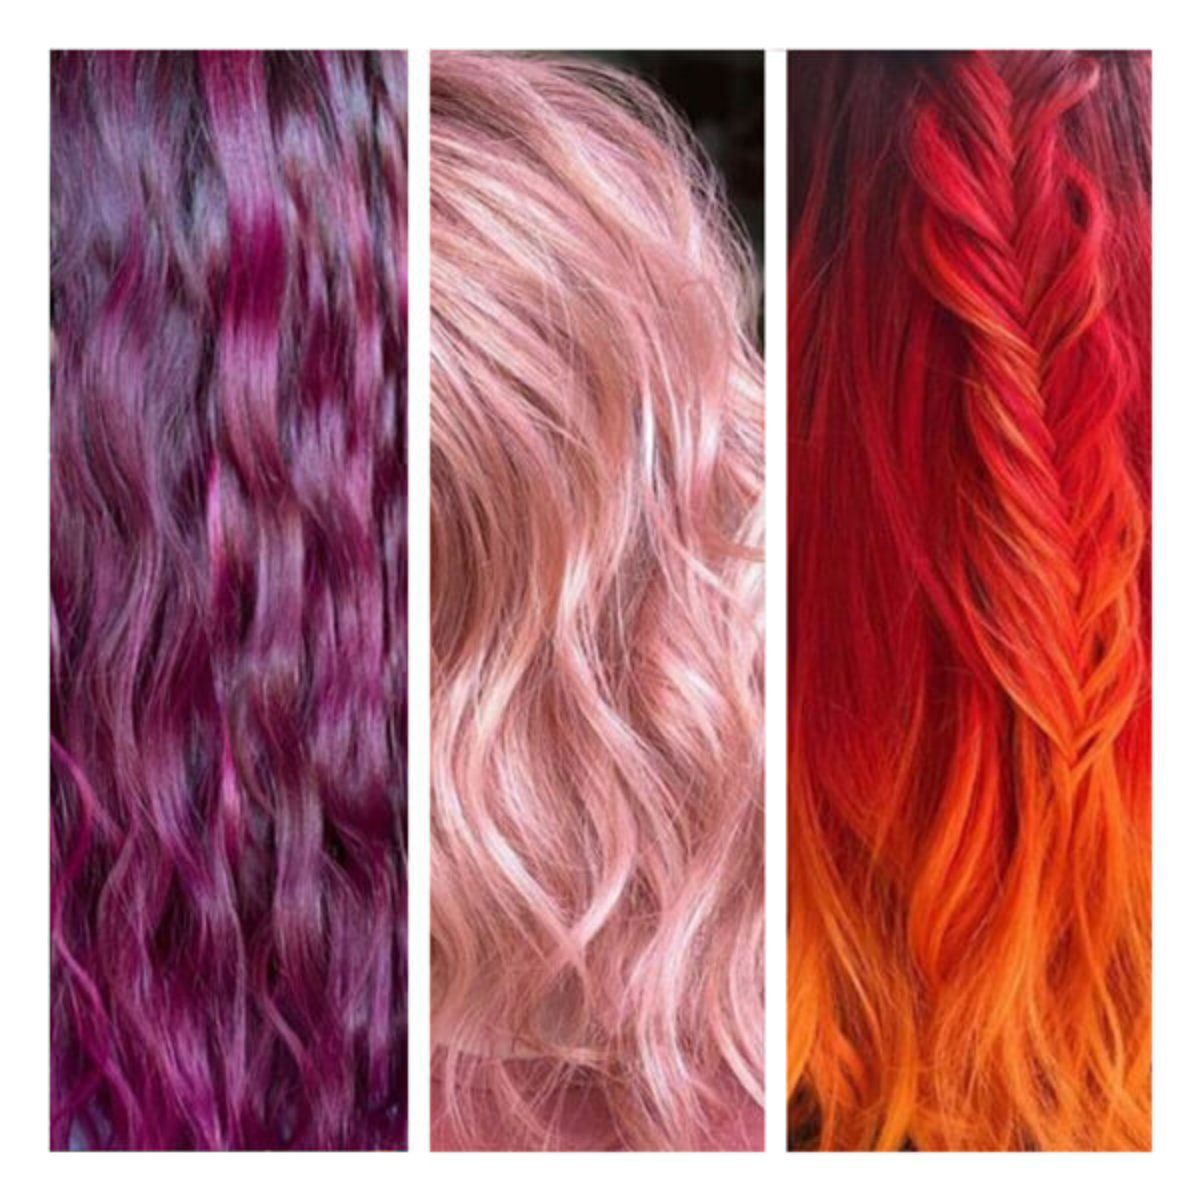 Hair swatches bright vibrant colors